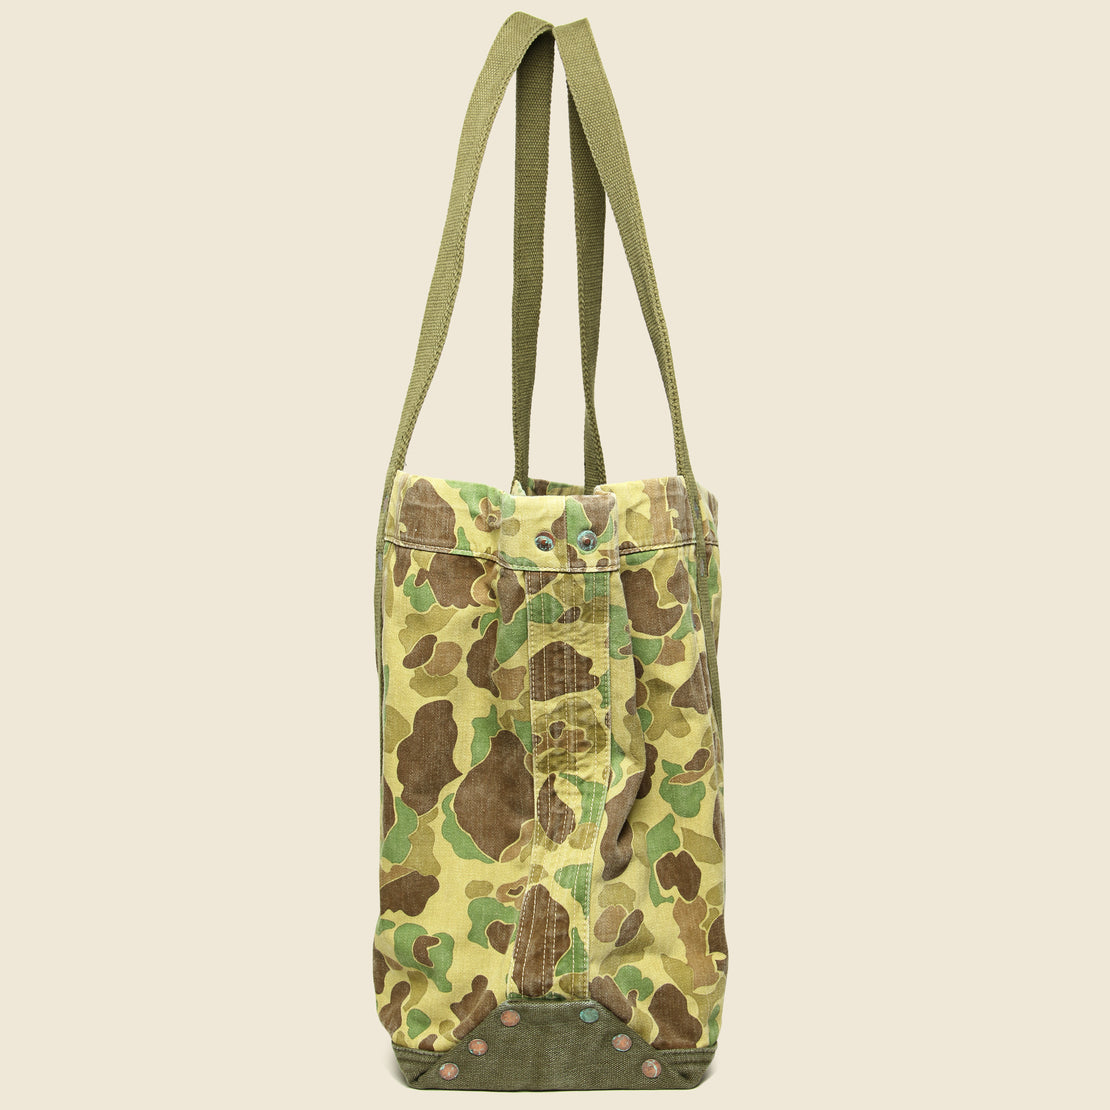 Camo Twill Tote - Olive Frog Skin